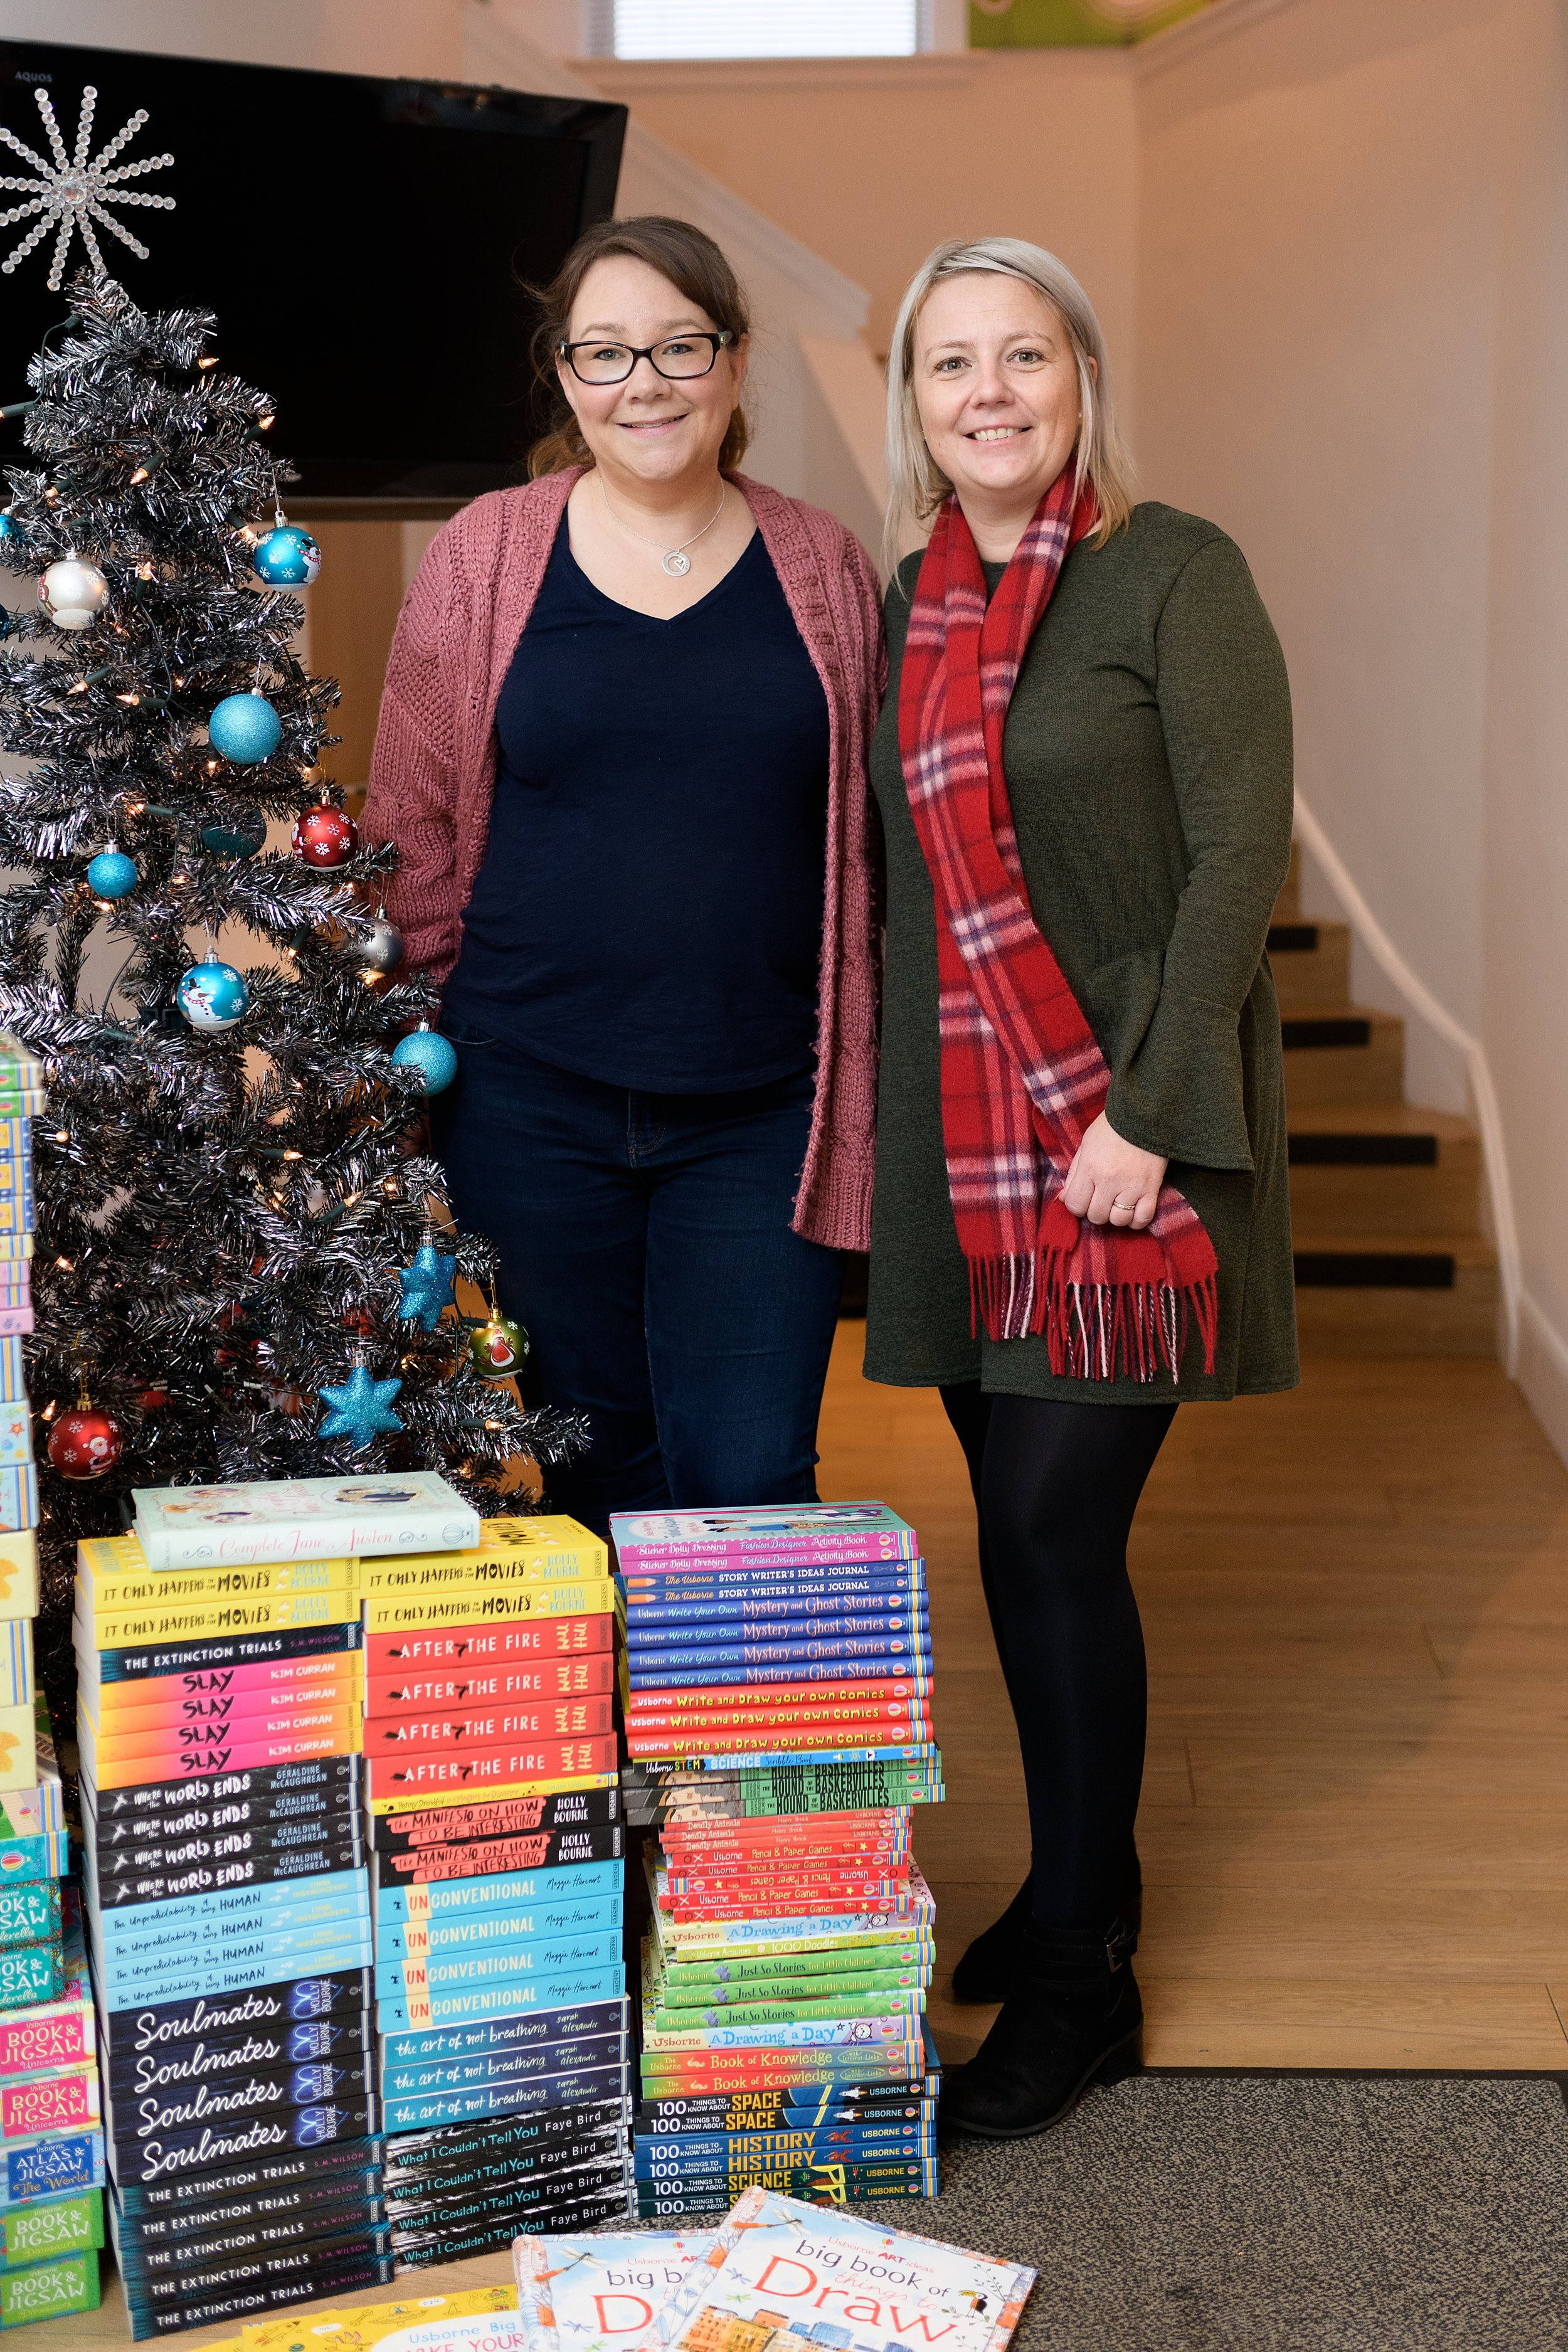 Fiona & Stacey, the Charity Manager for Help for Kids